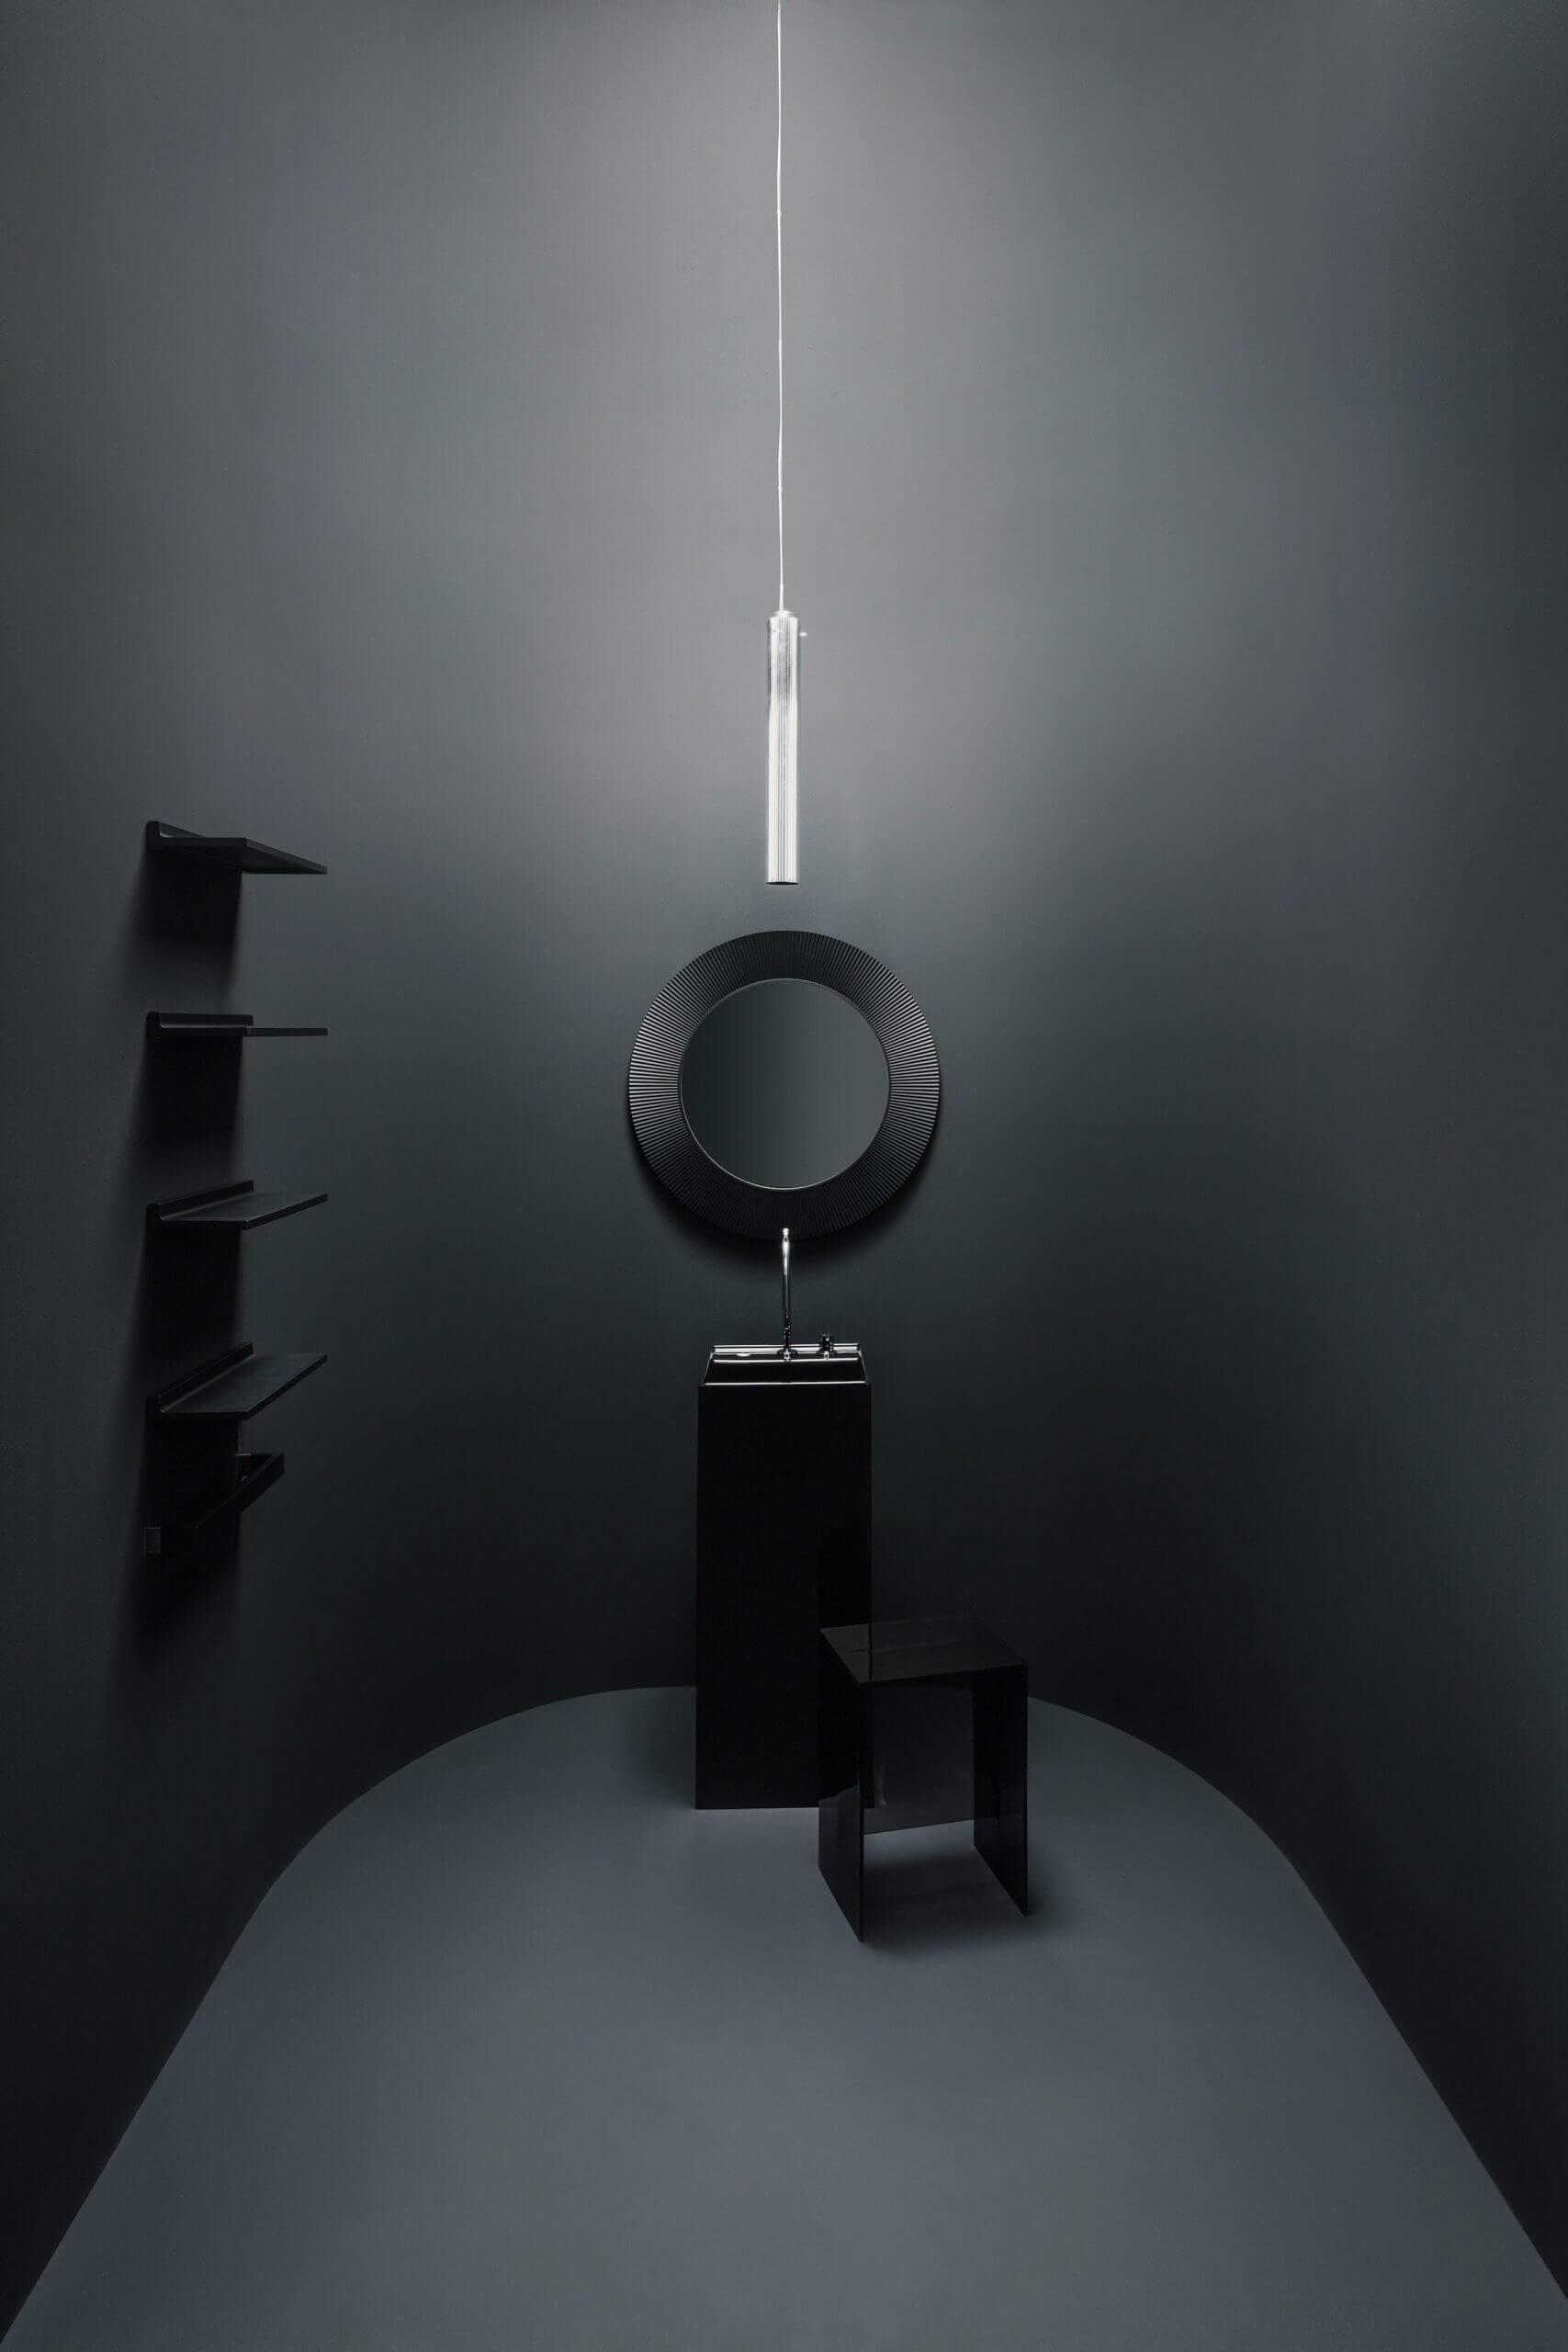 kartell by laufen bathroom products promotion dezeen 2364 col 6 scaled 1